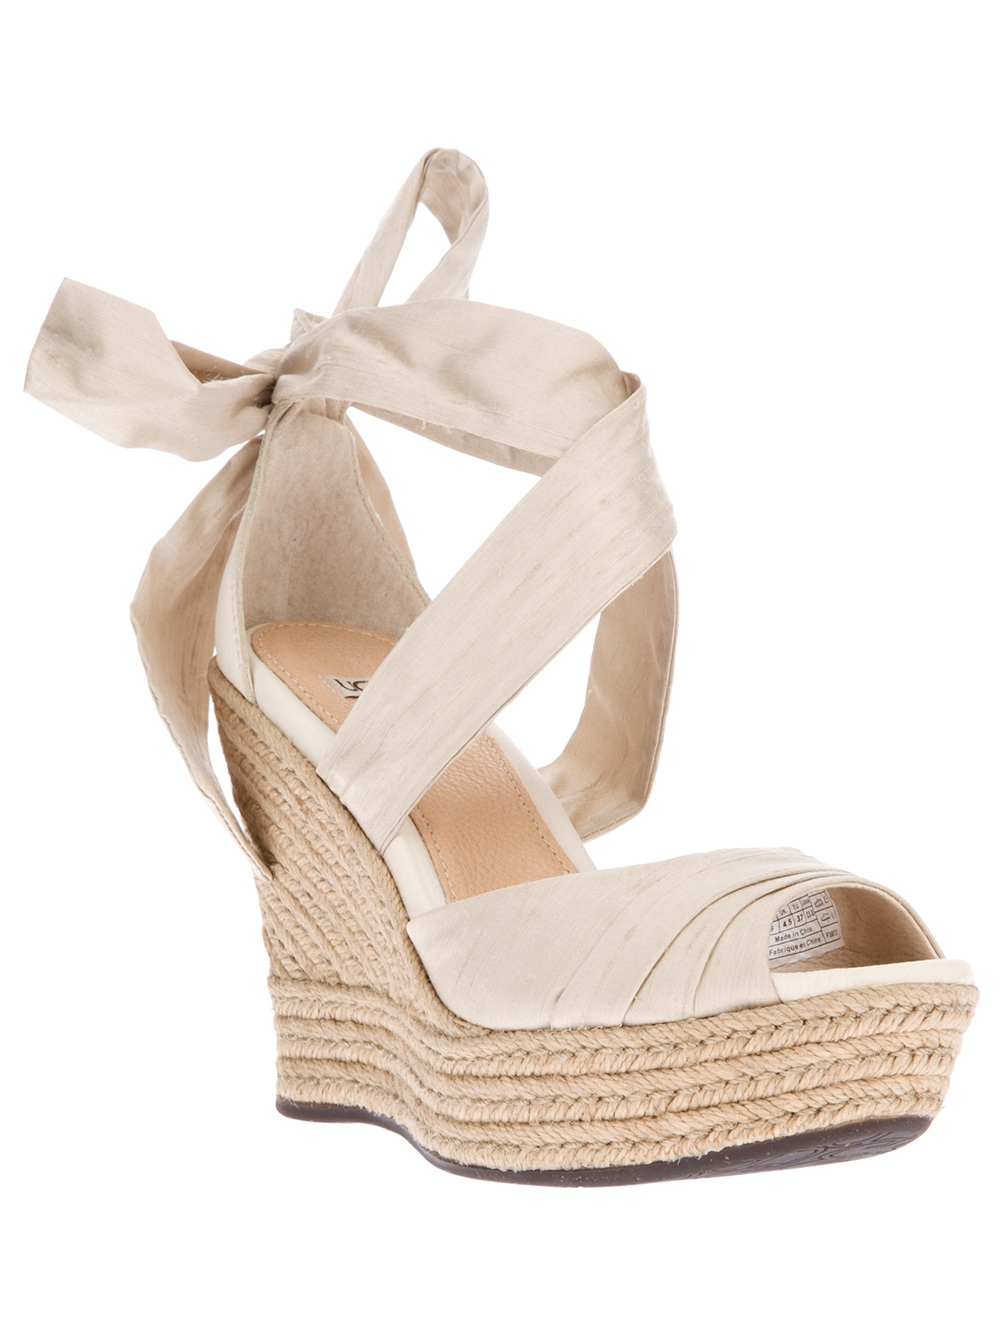 Lyst Ugg Lucianna Wedge Sandal In Metallic